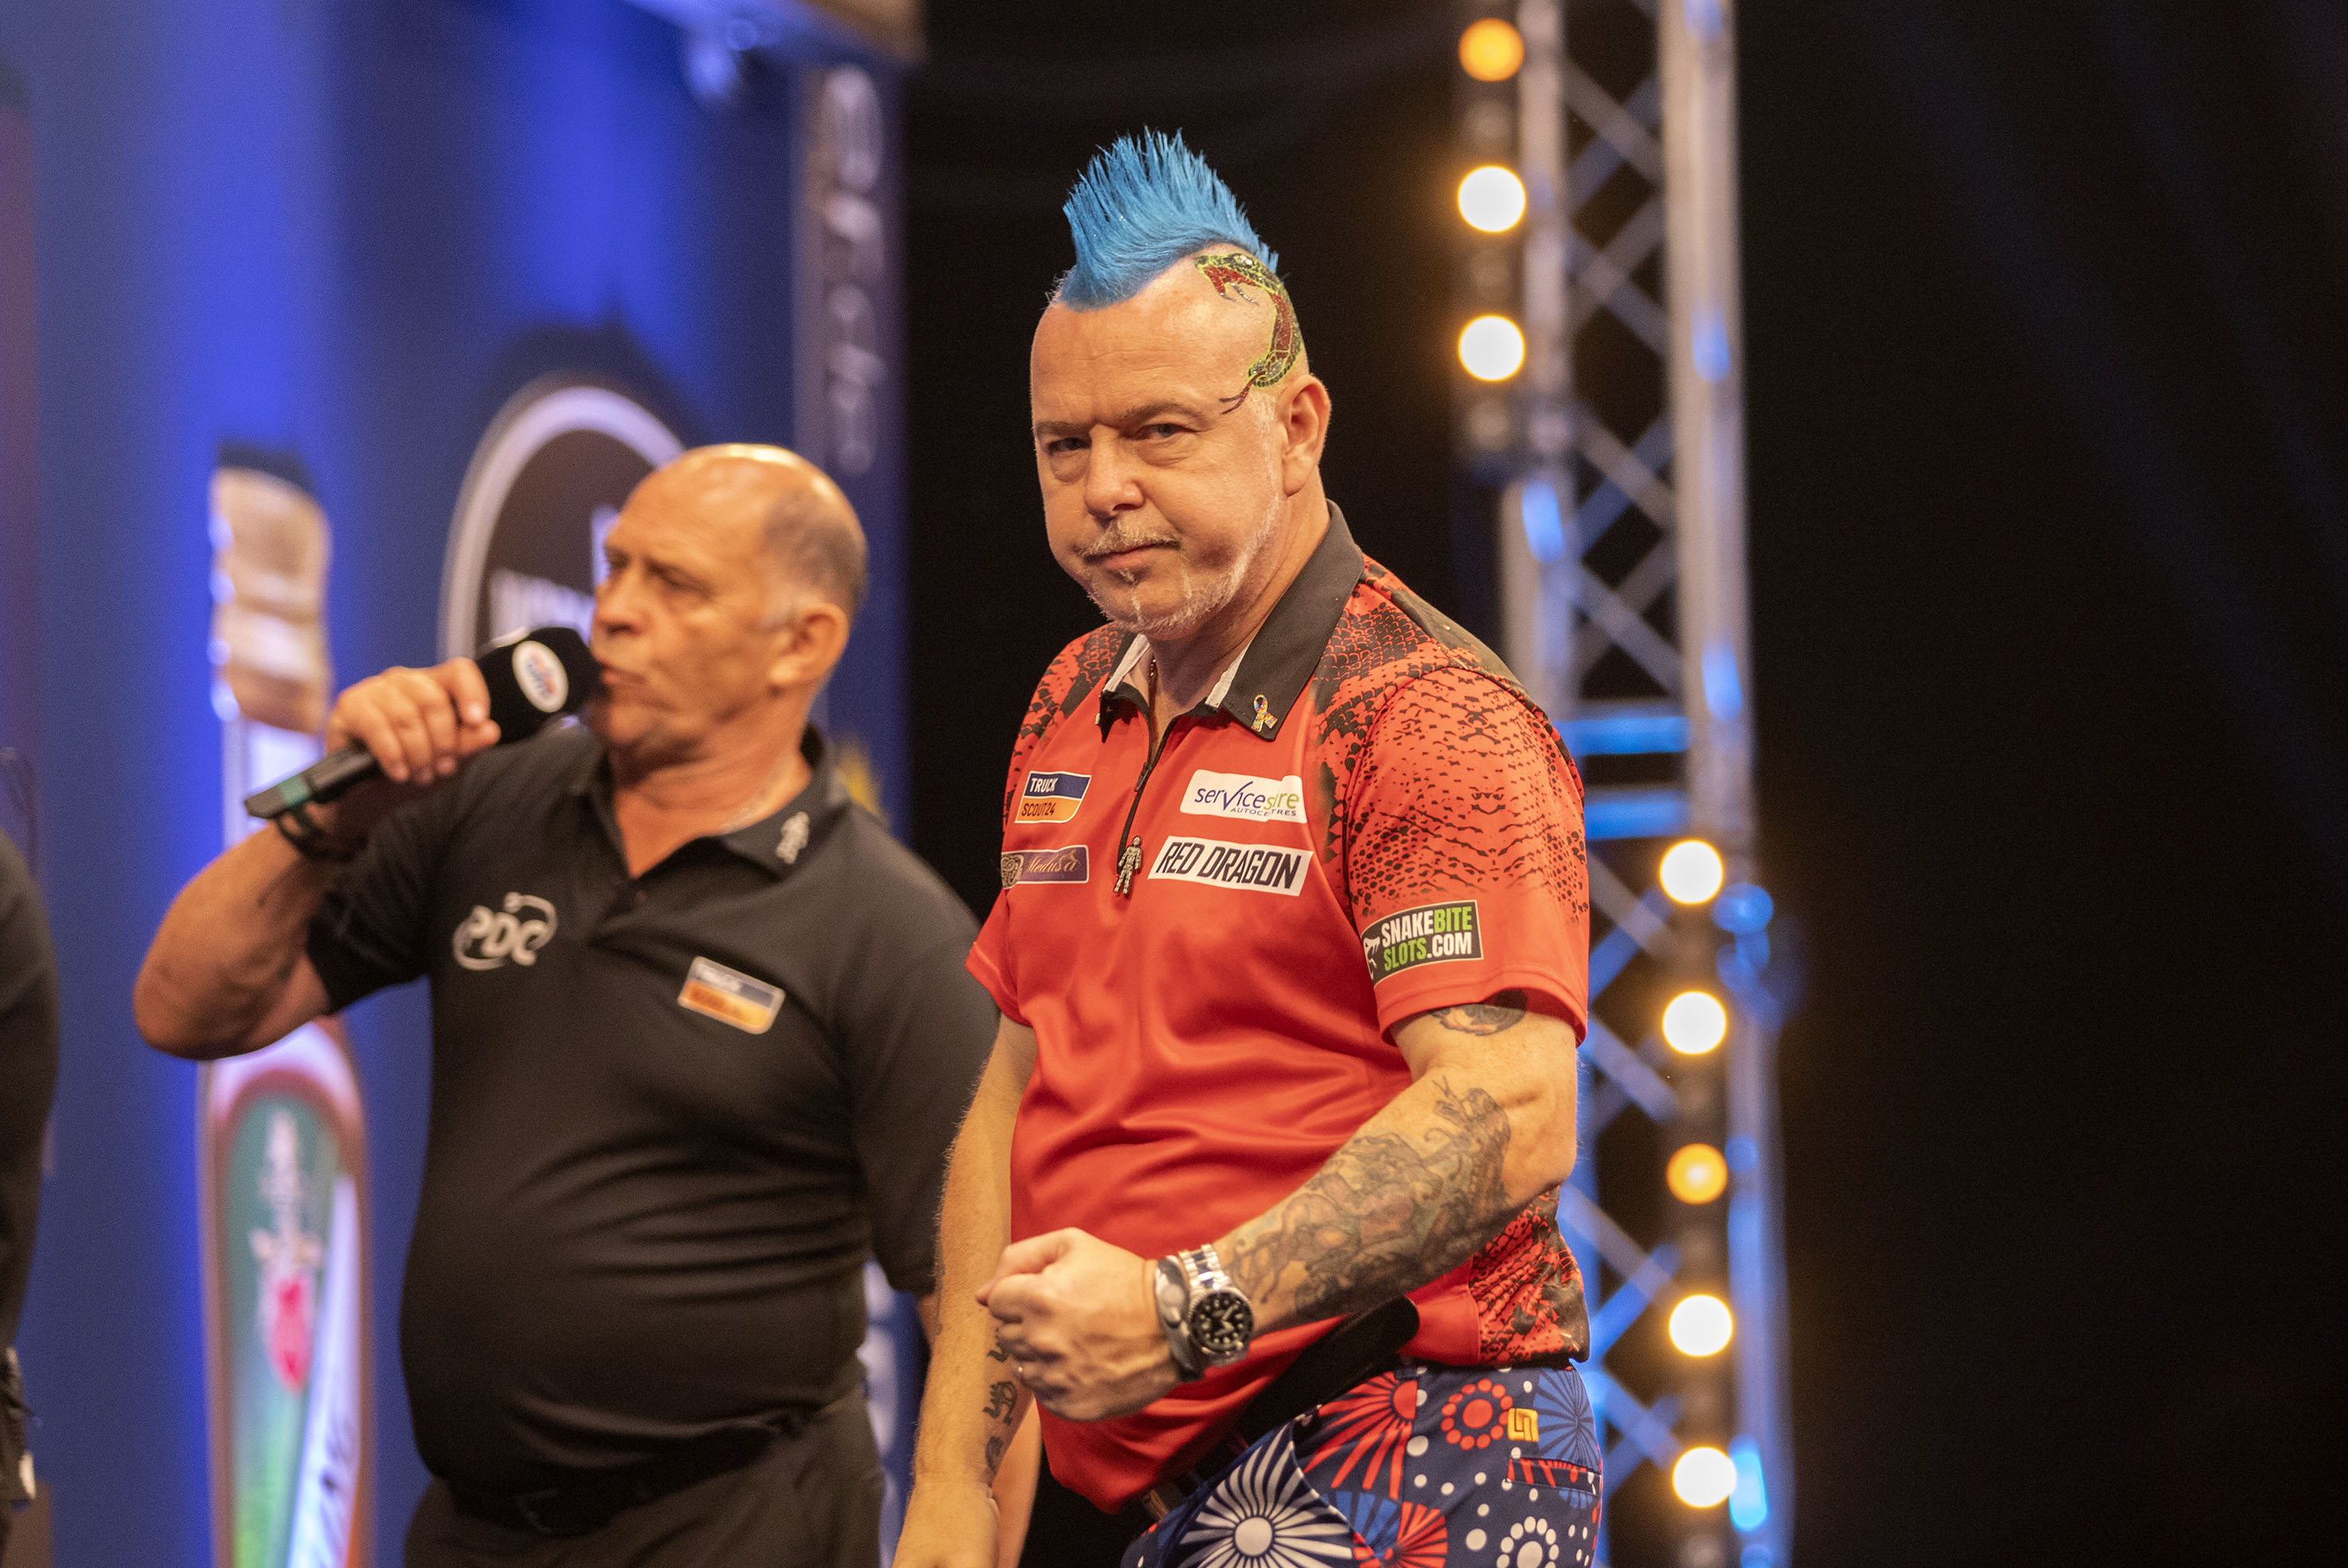 Peter Wright (Kais Bodensieck, PDC)